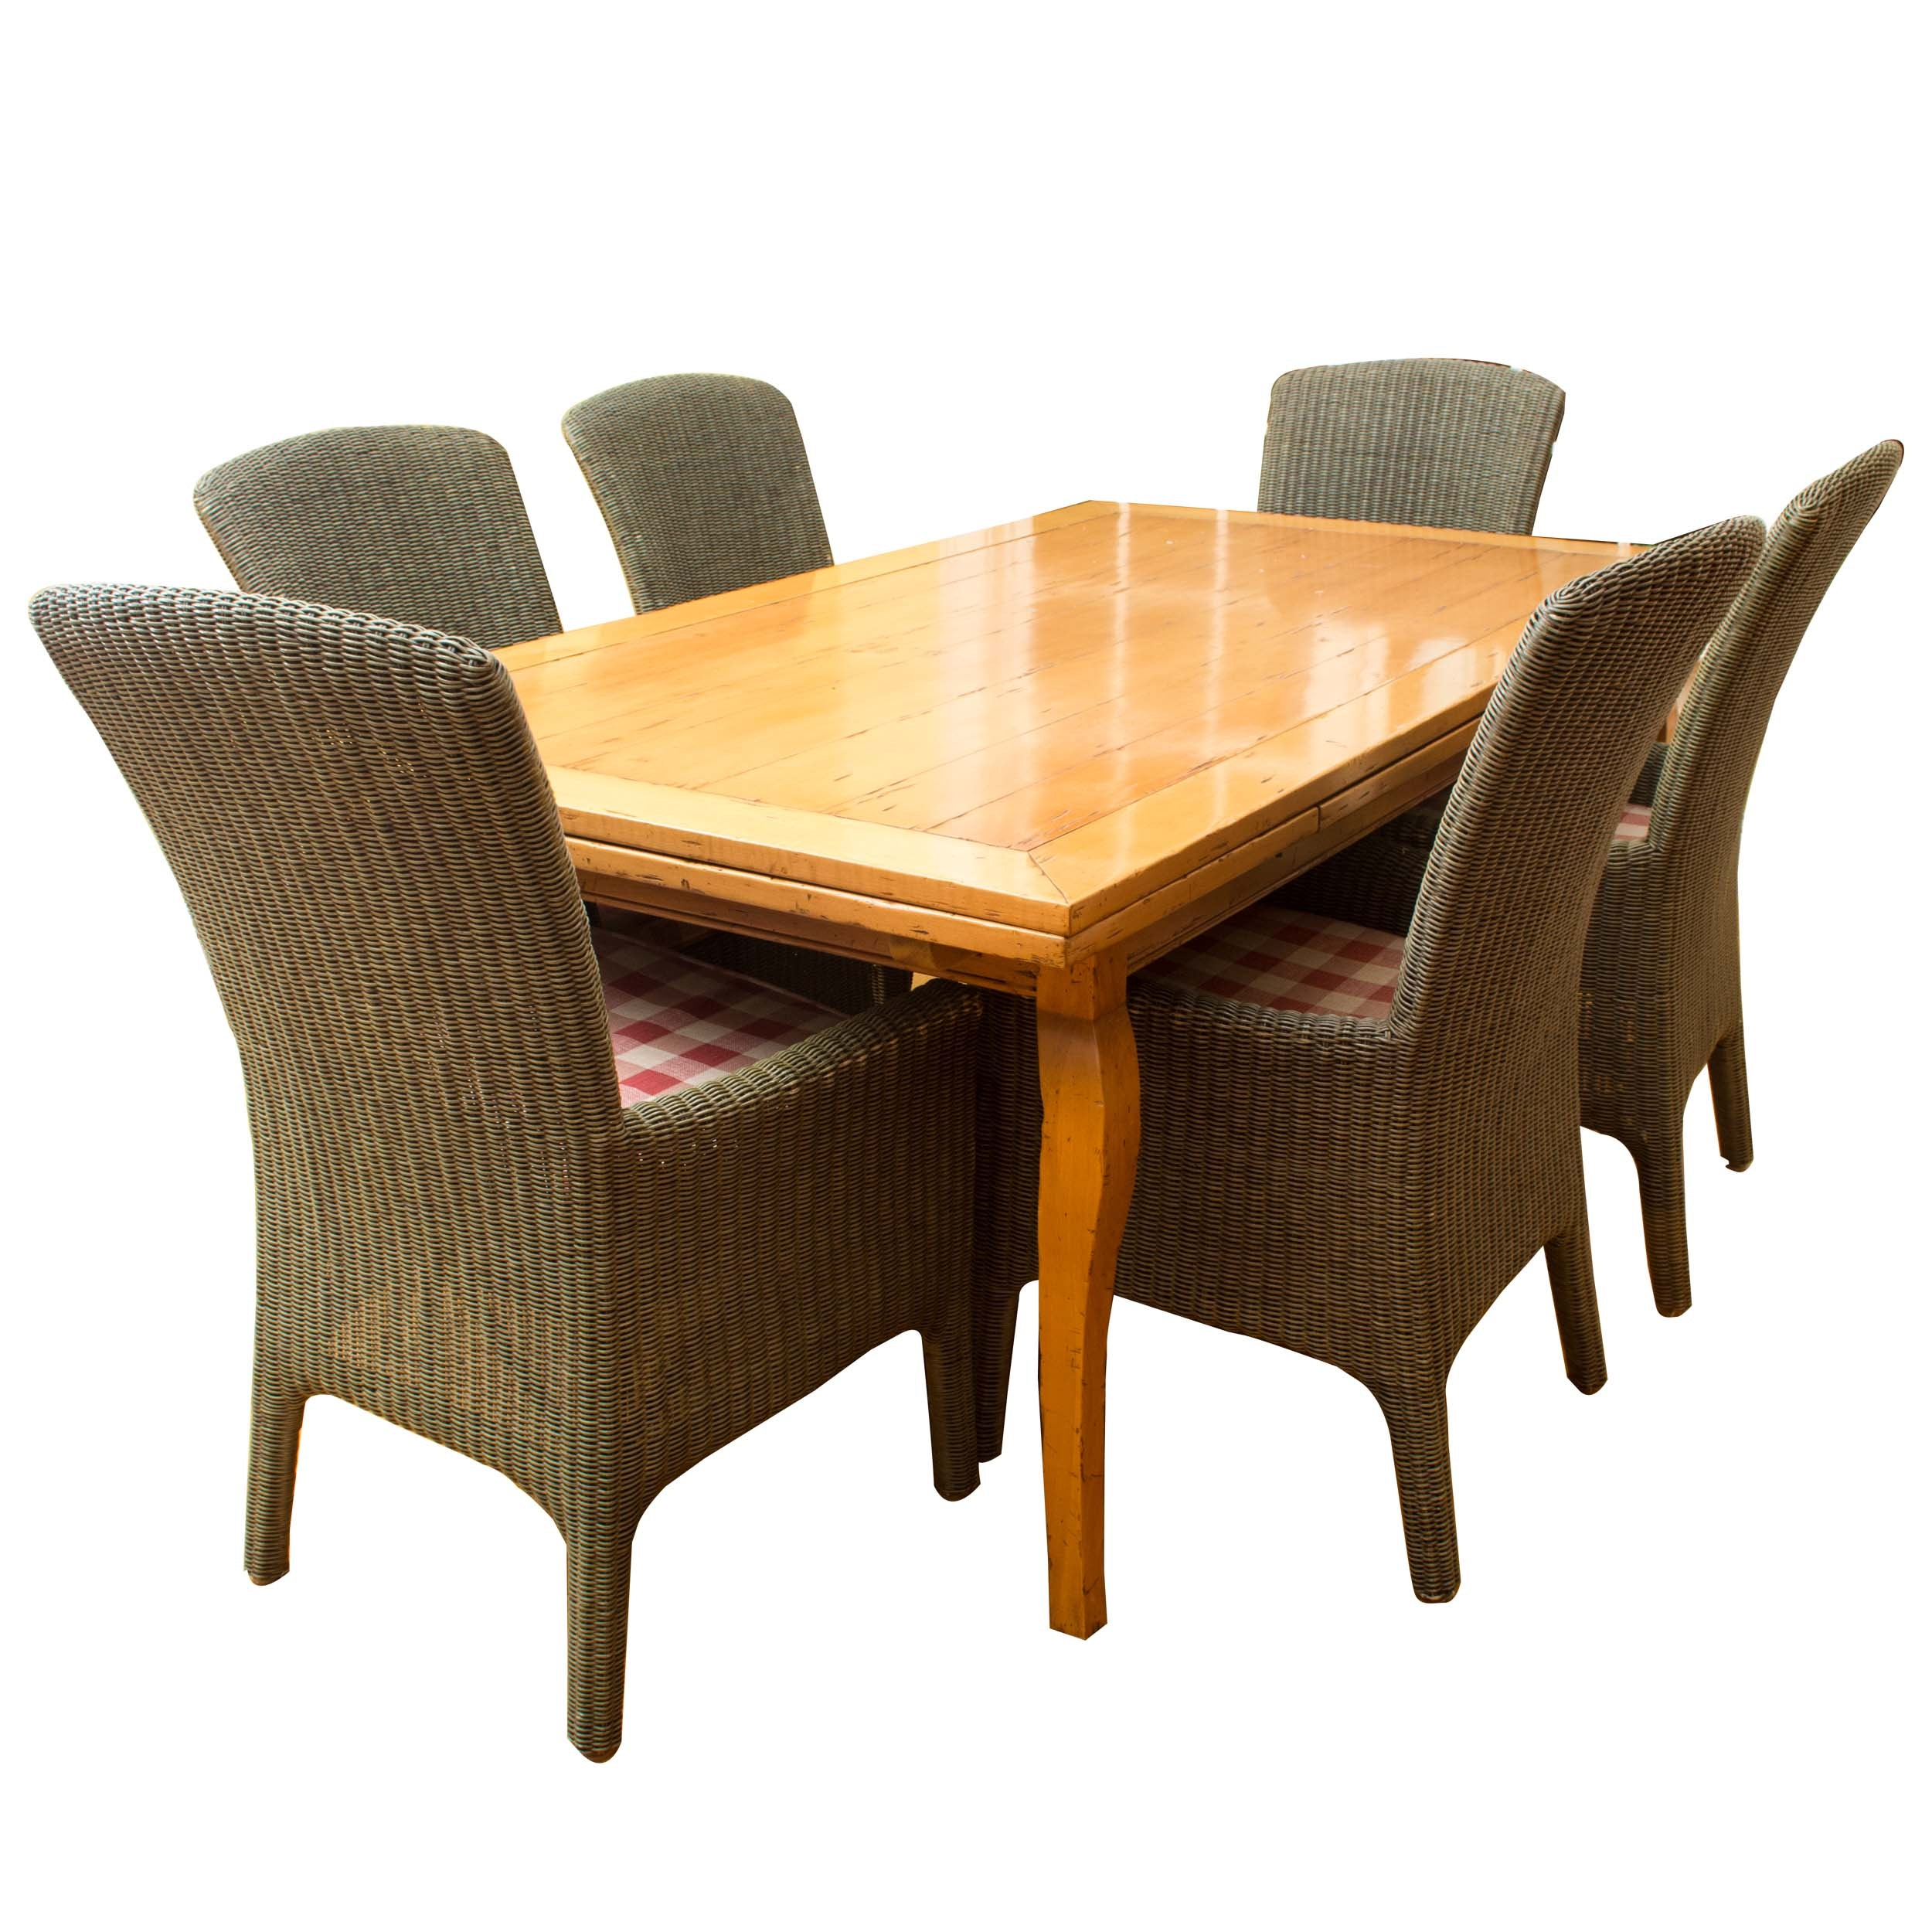 Contemporary Wooden Dining Table with Wicker Side Chairs